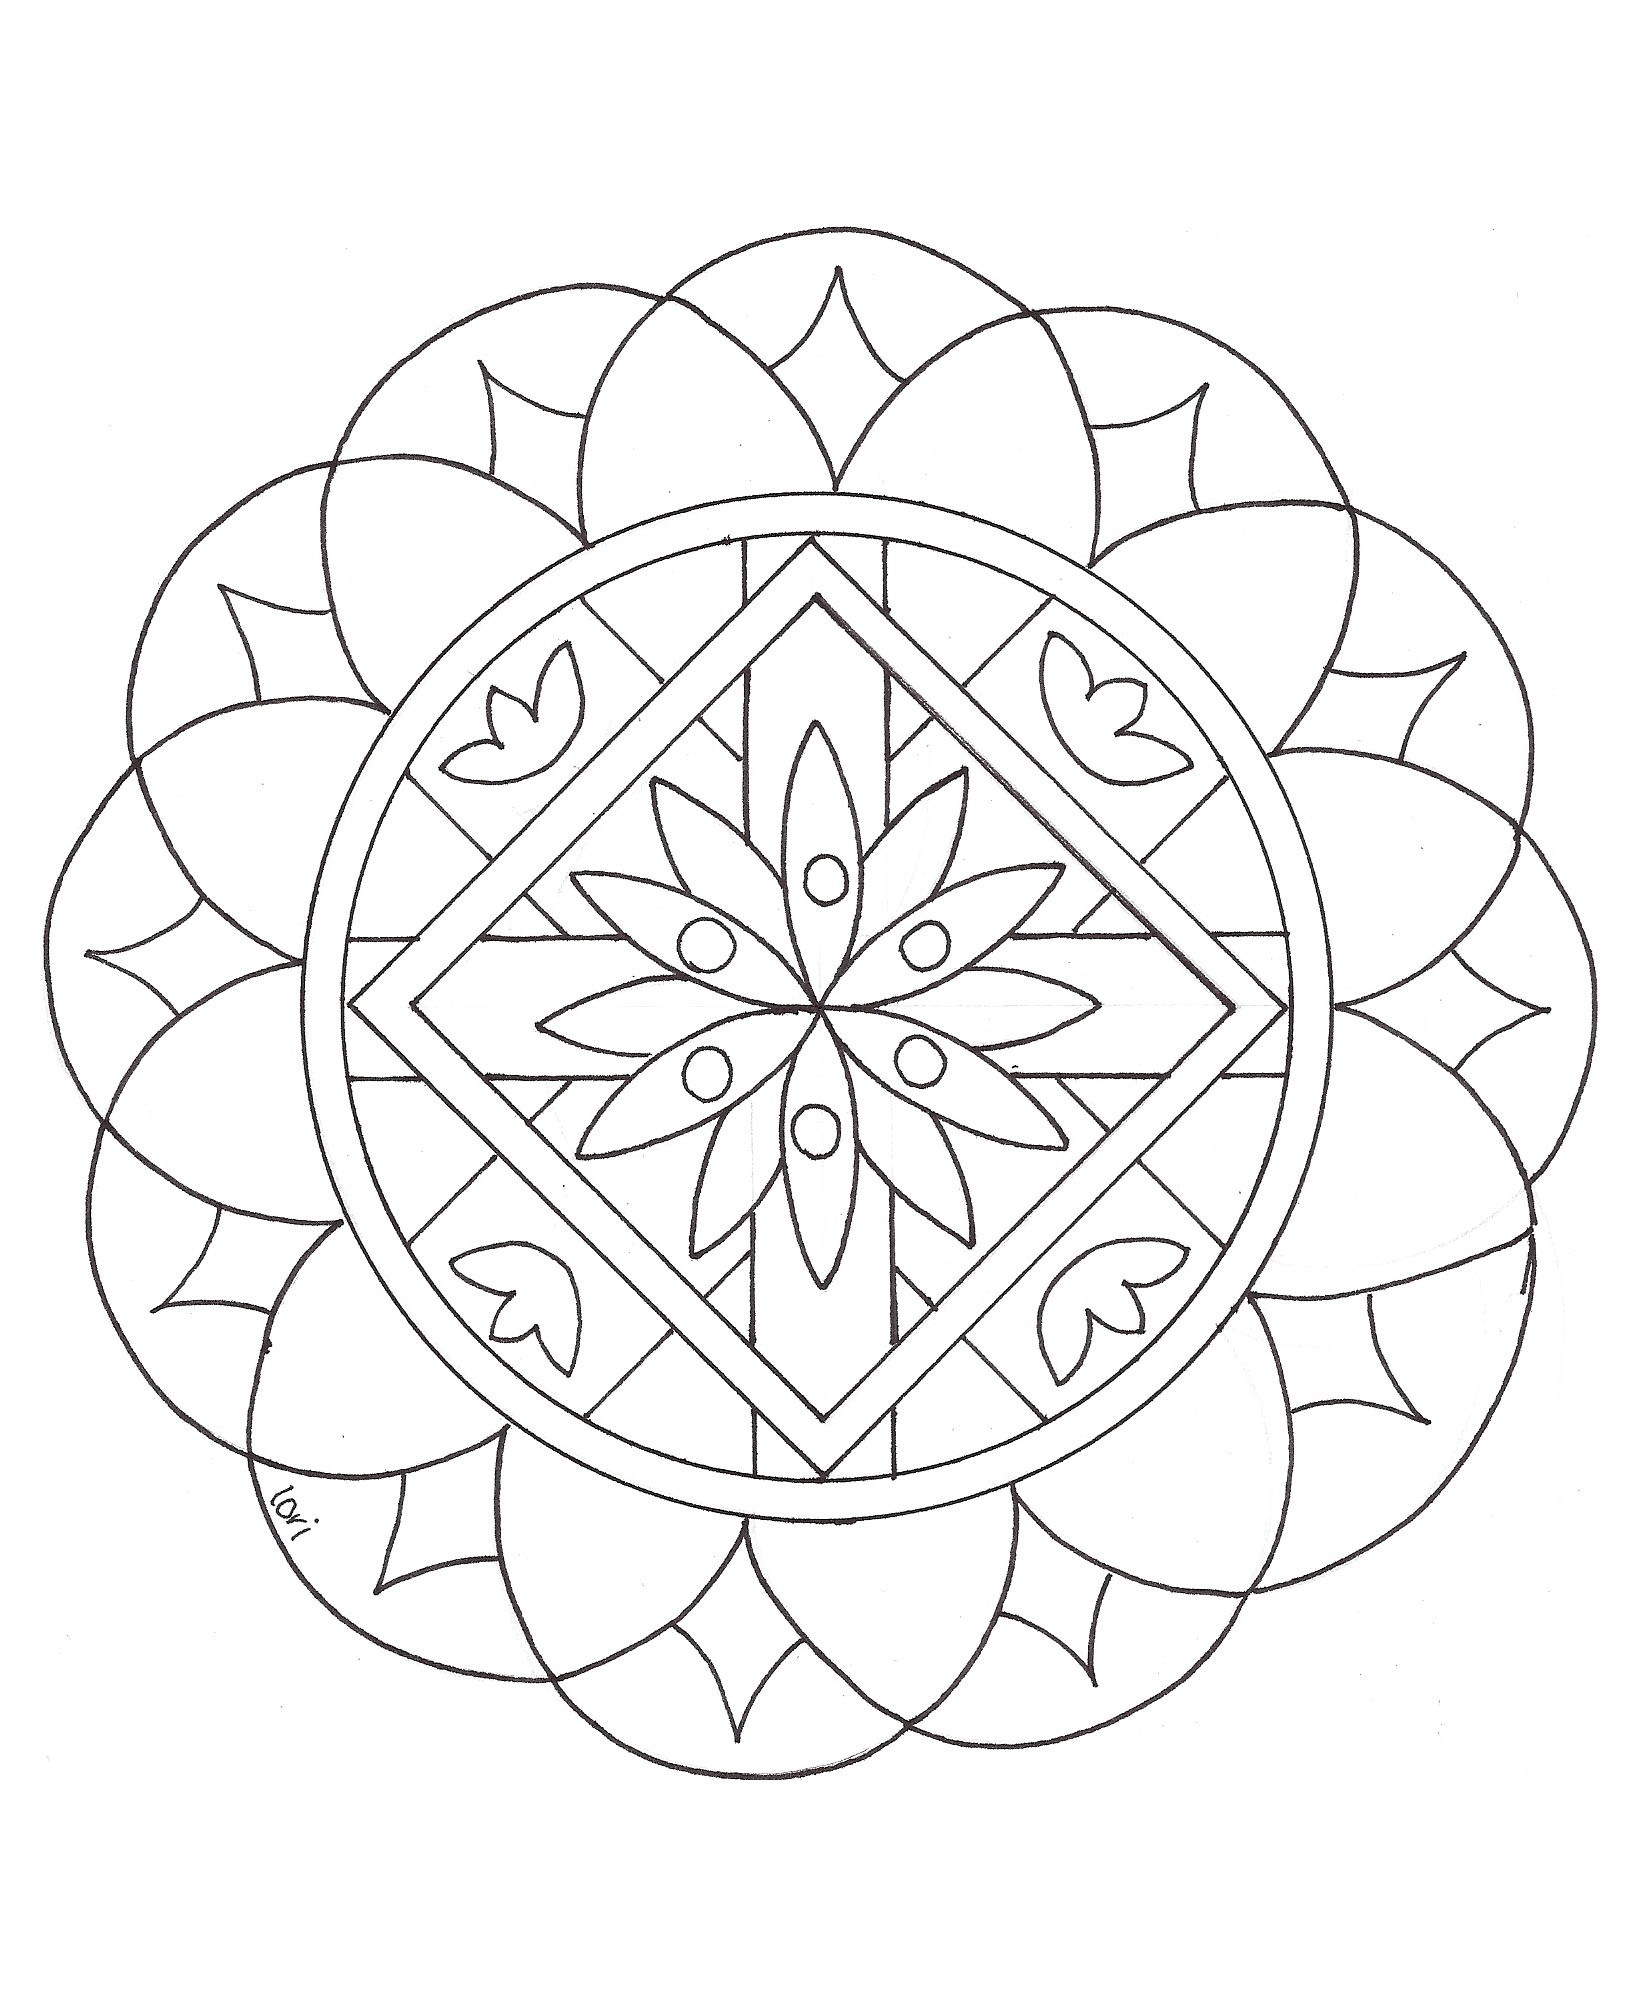 simple mandala 2 from the gallery kids mandalas